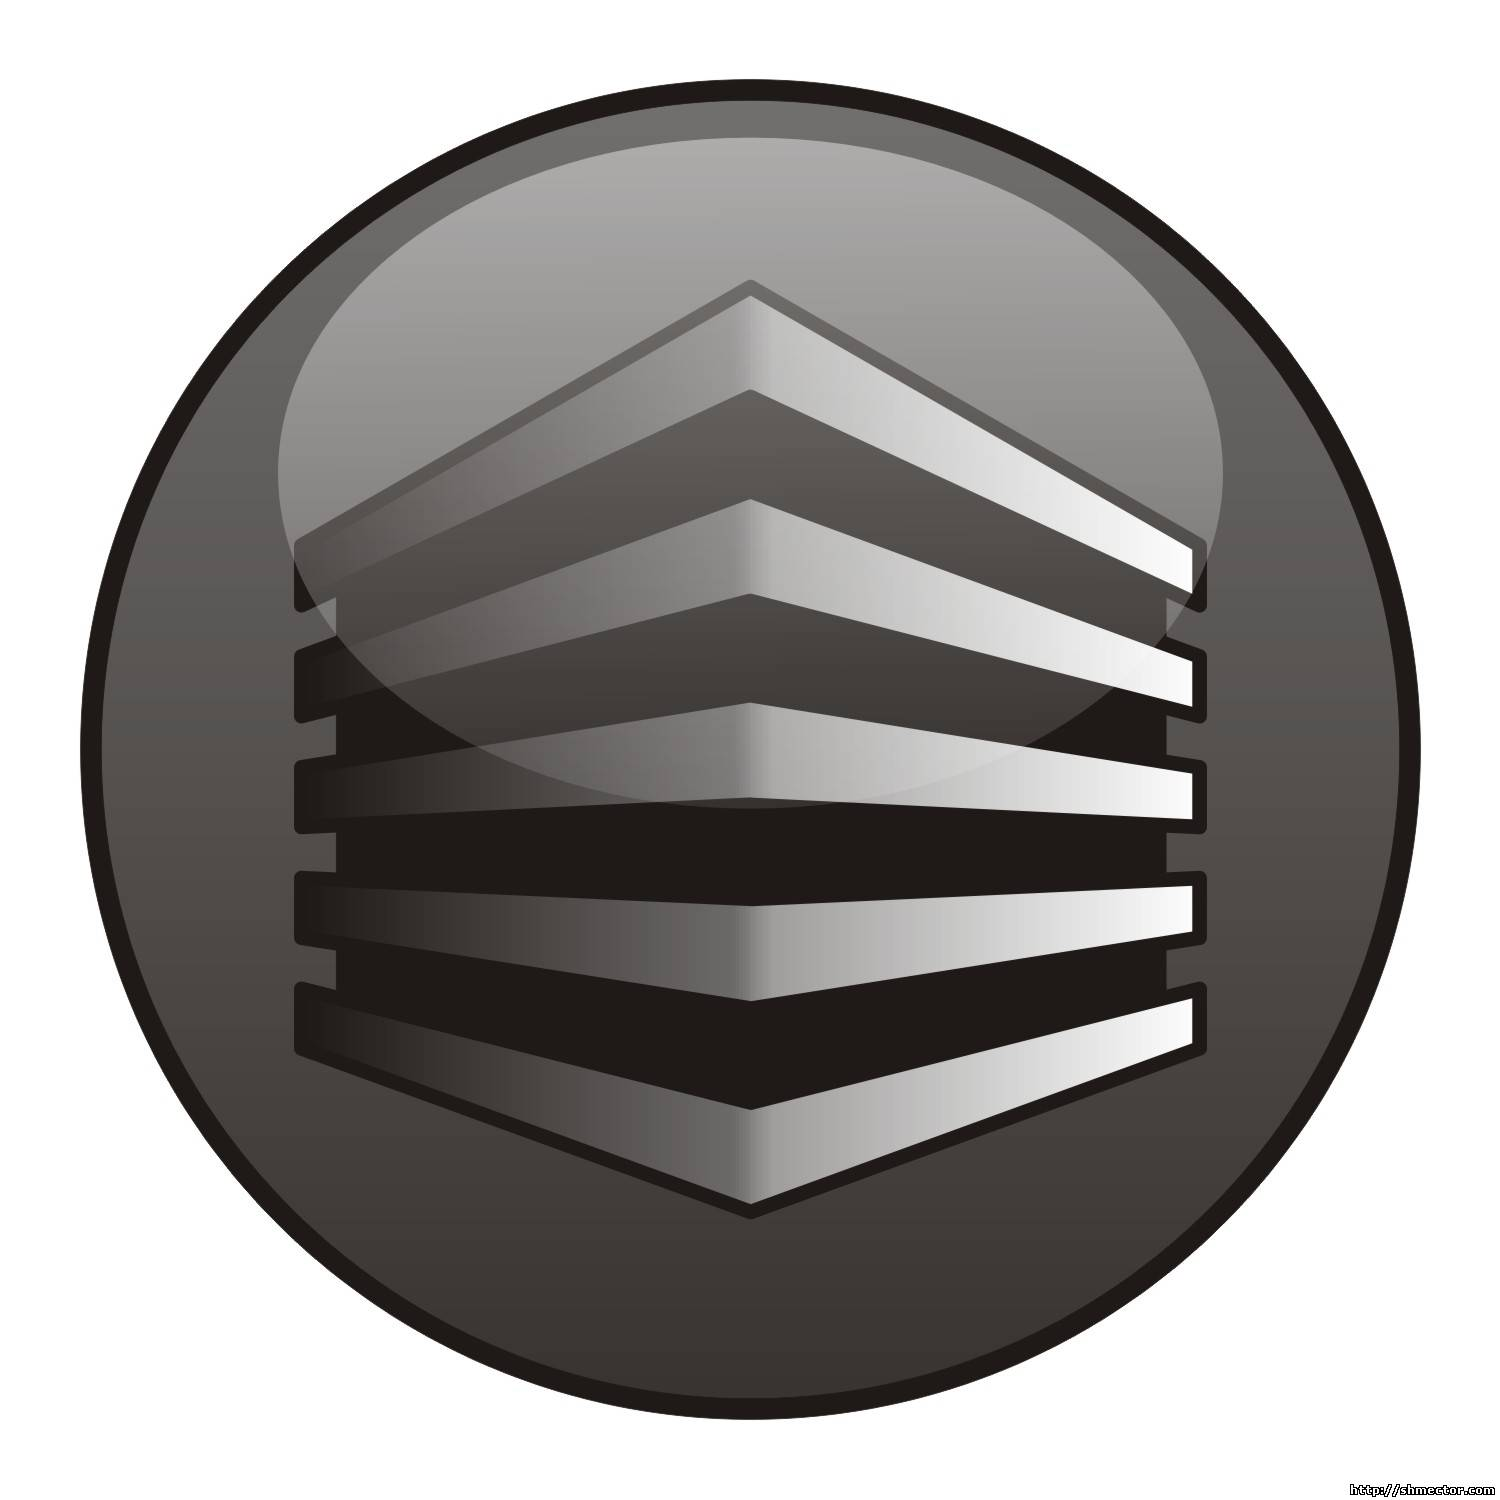 Vector illustration of a glossy button icon of a house